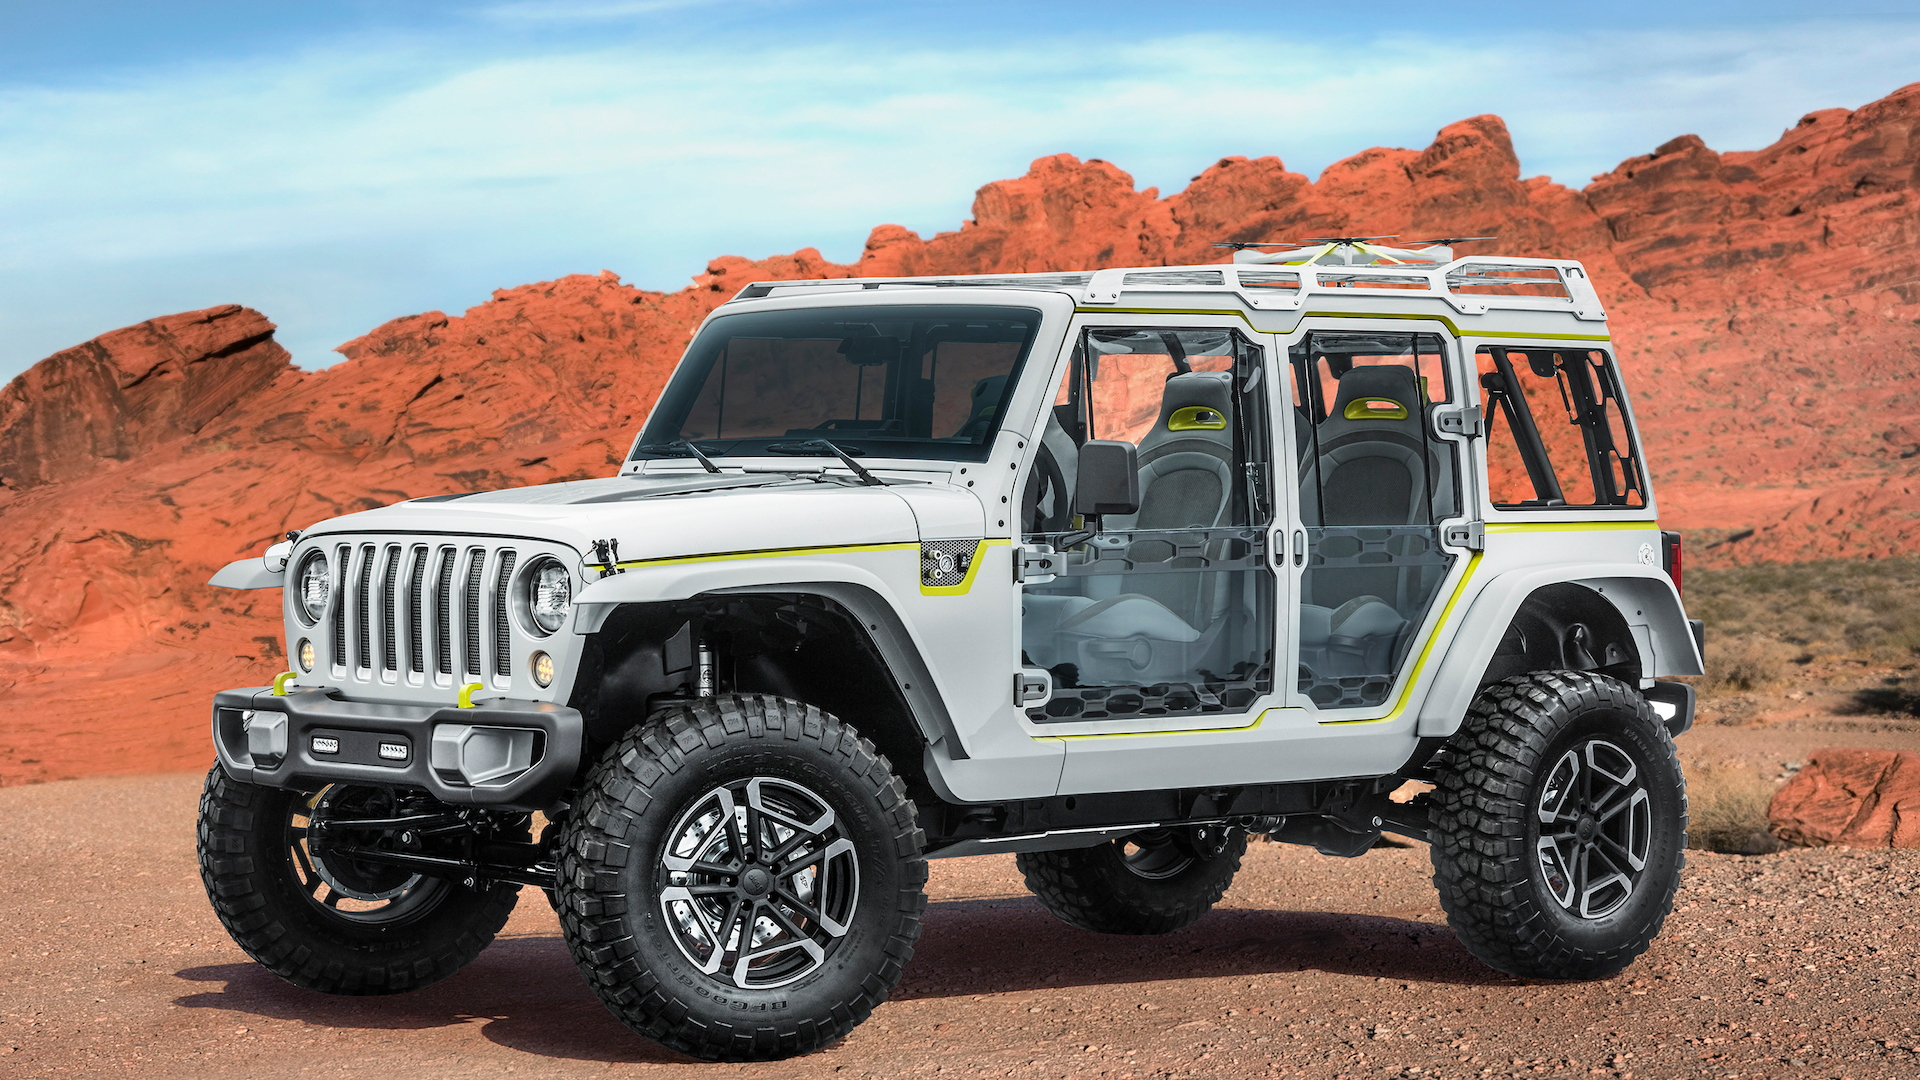 Jeep Safari for Moab Easter Jeep Safari, 2017